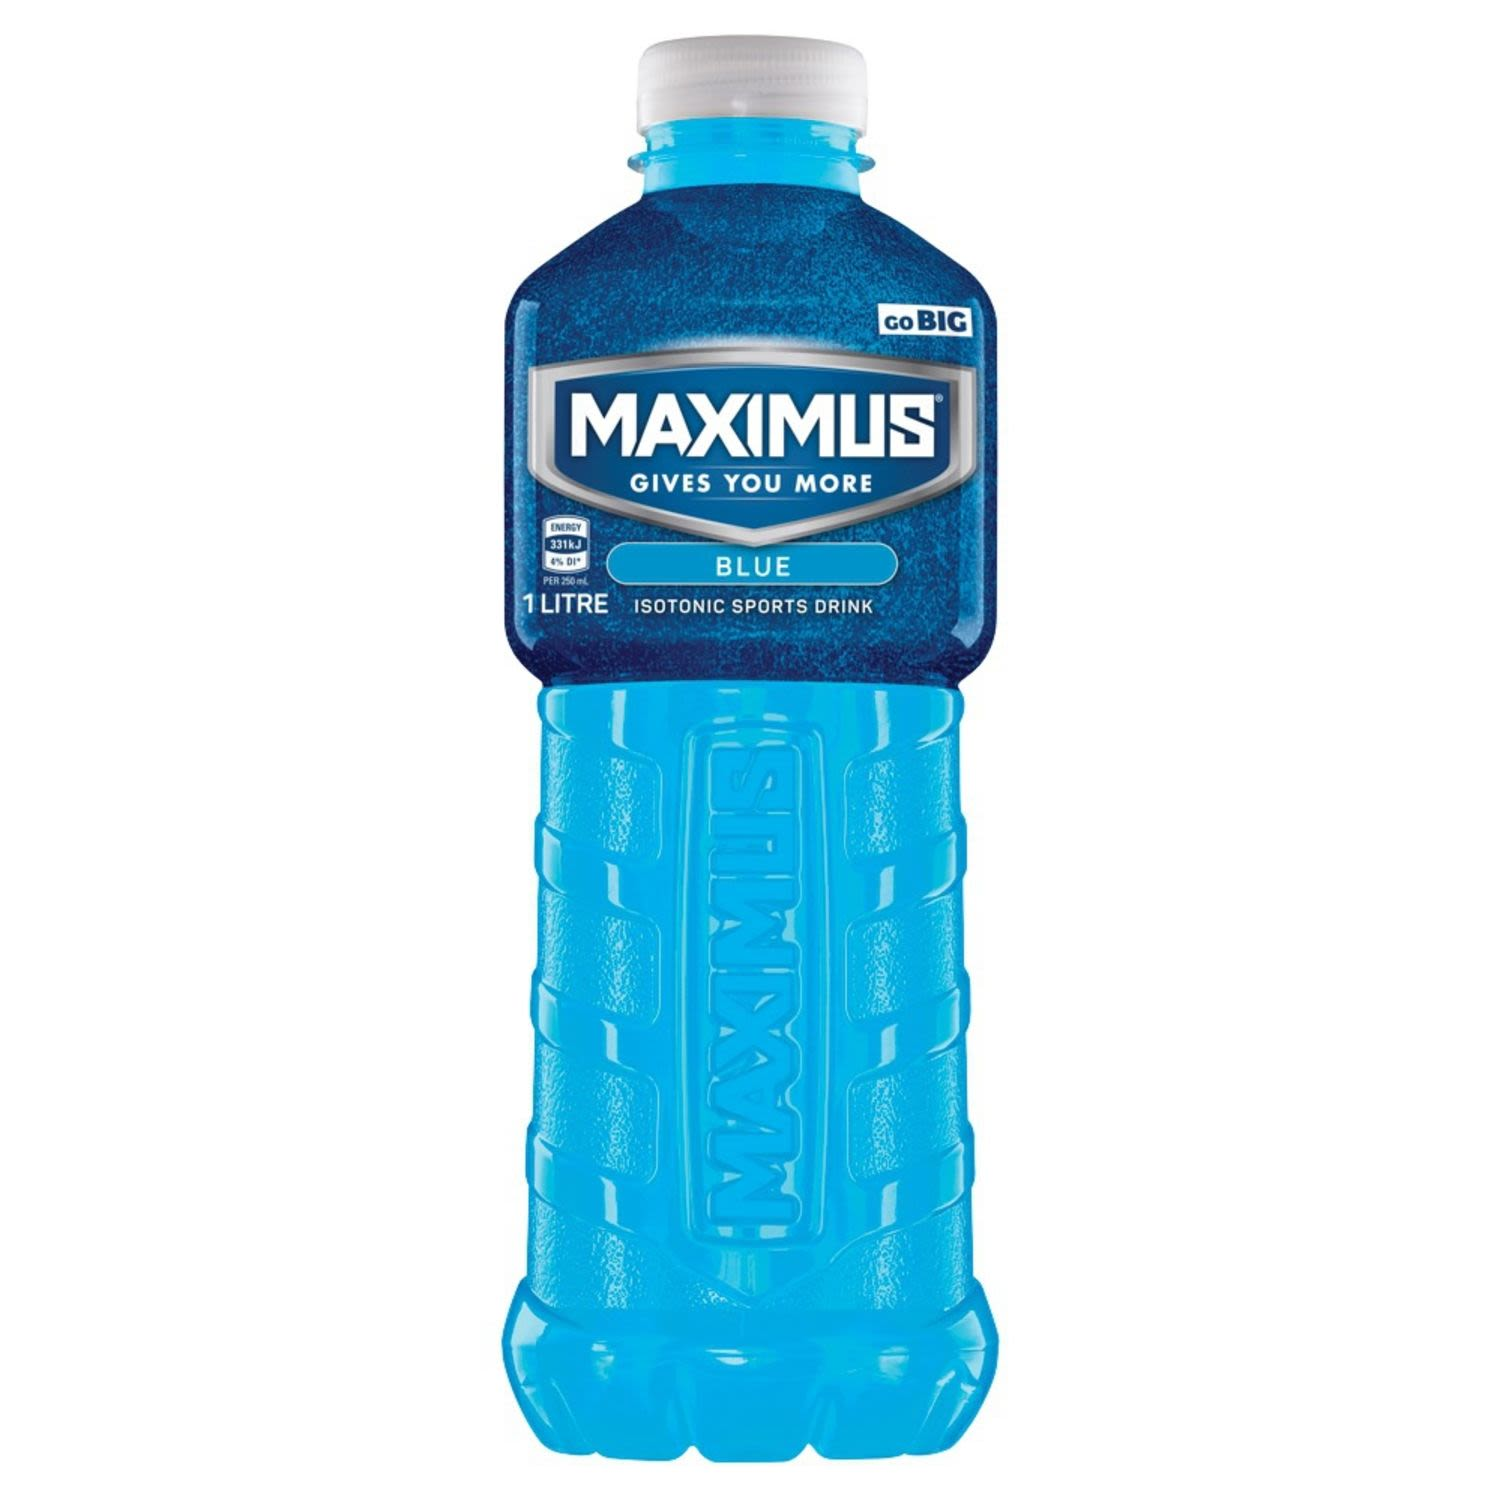 Maximus Isotonic Sports Drink Blue, 1 Litre